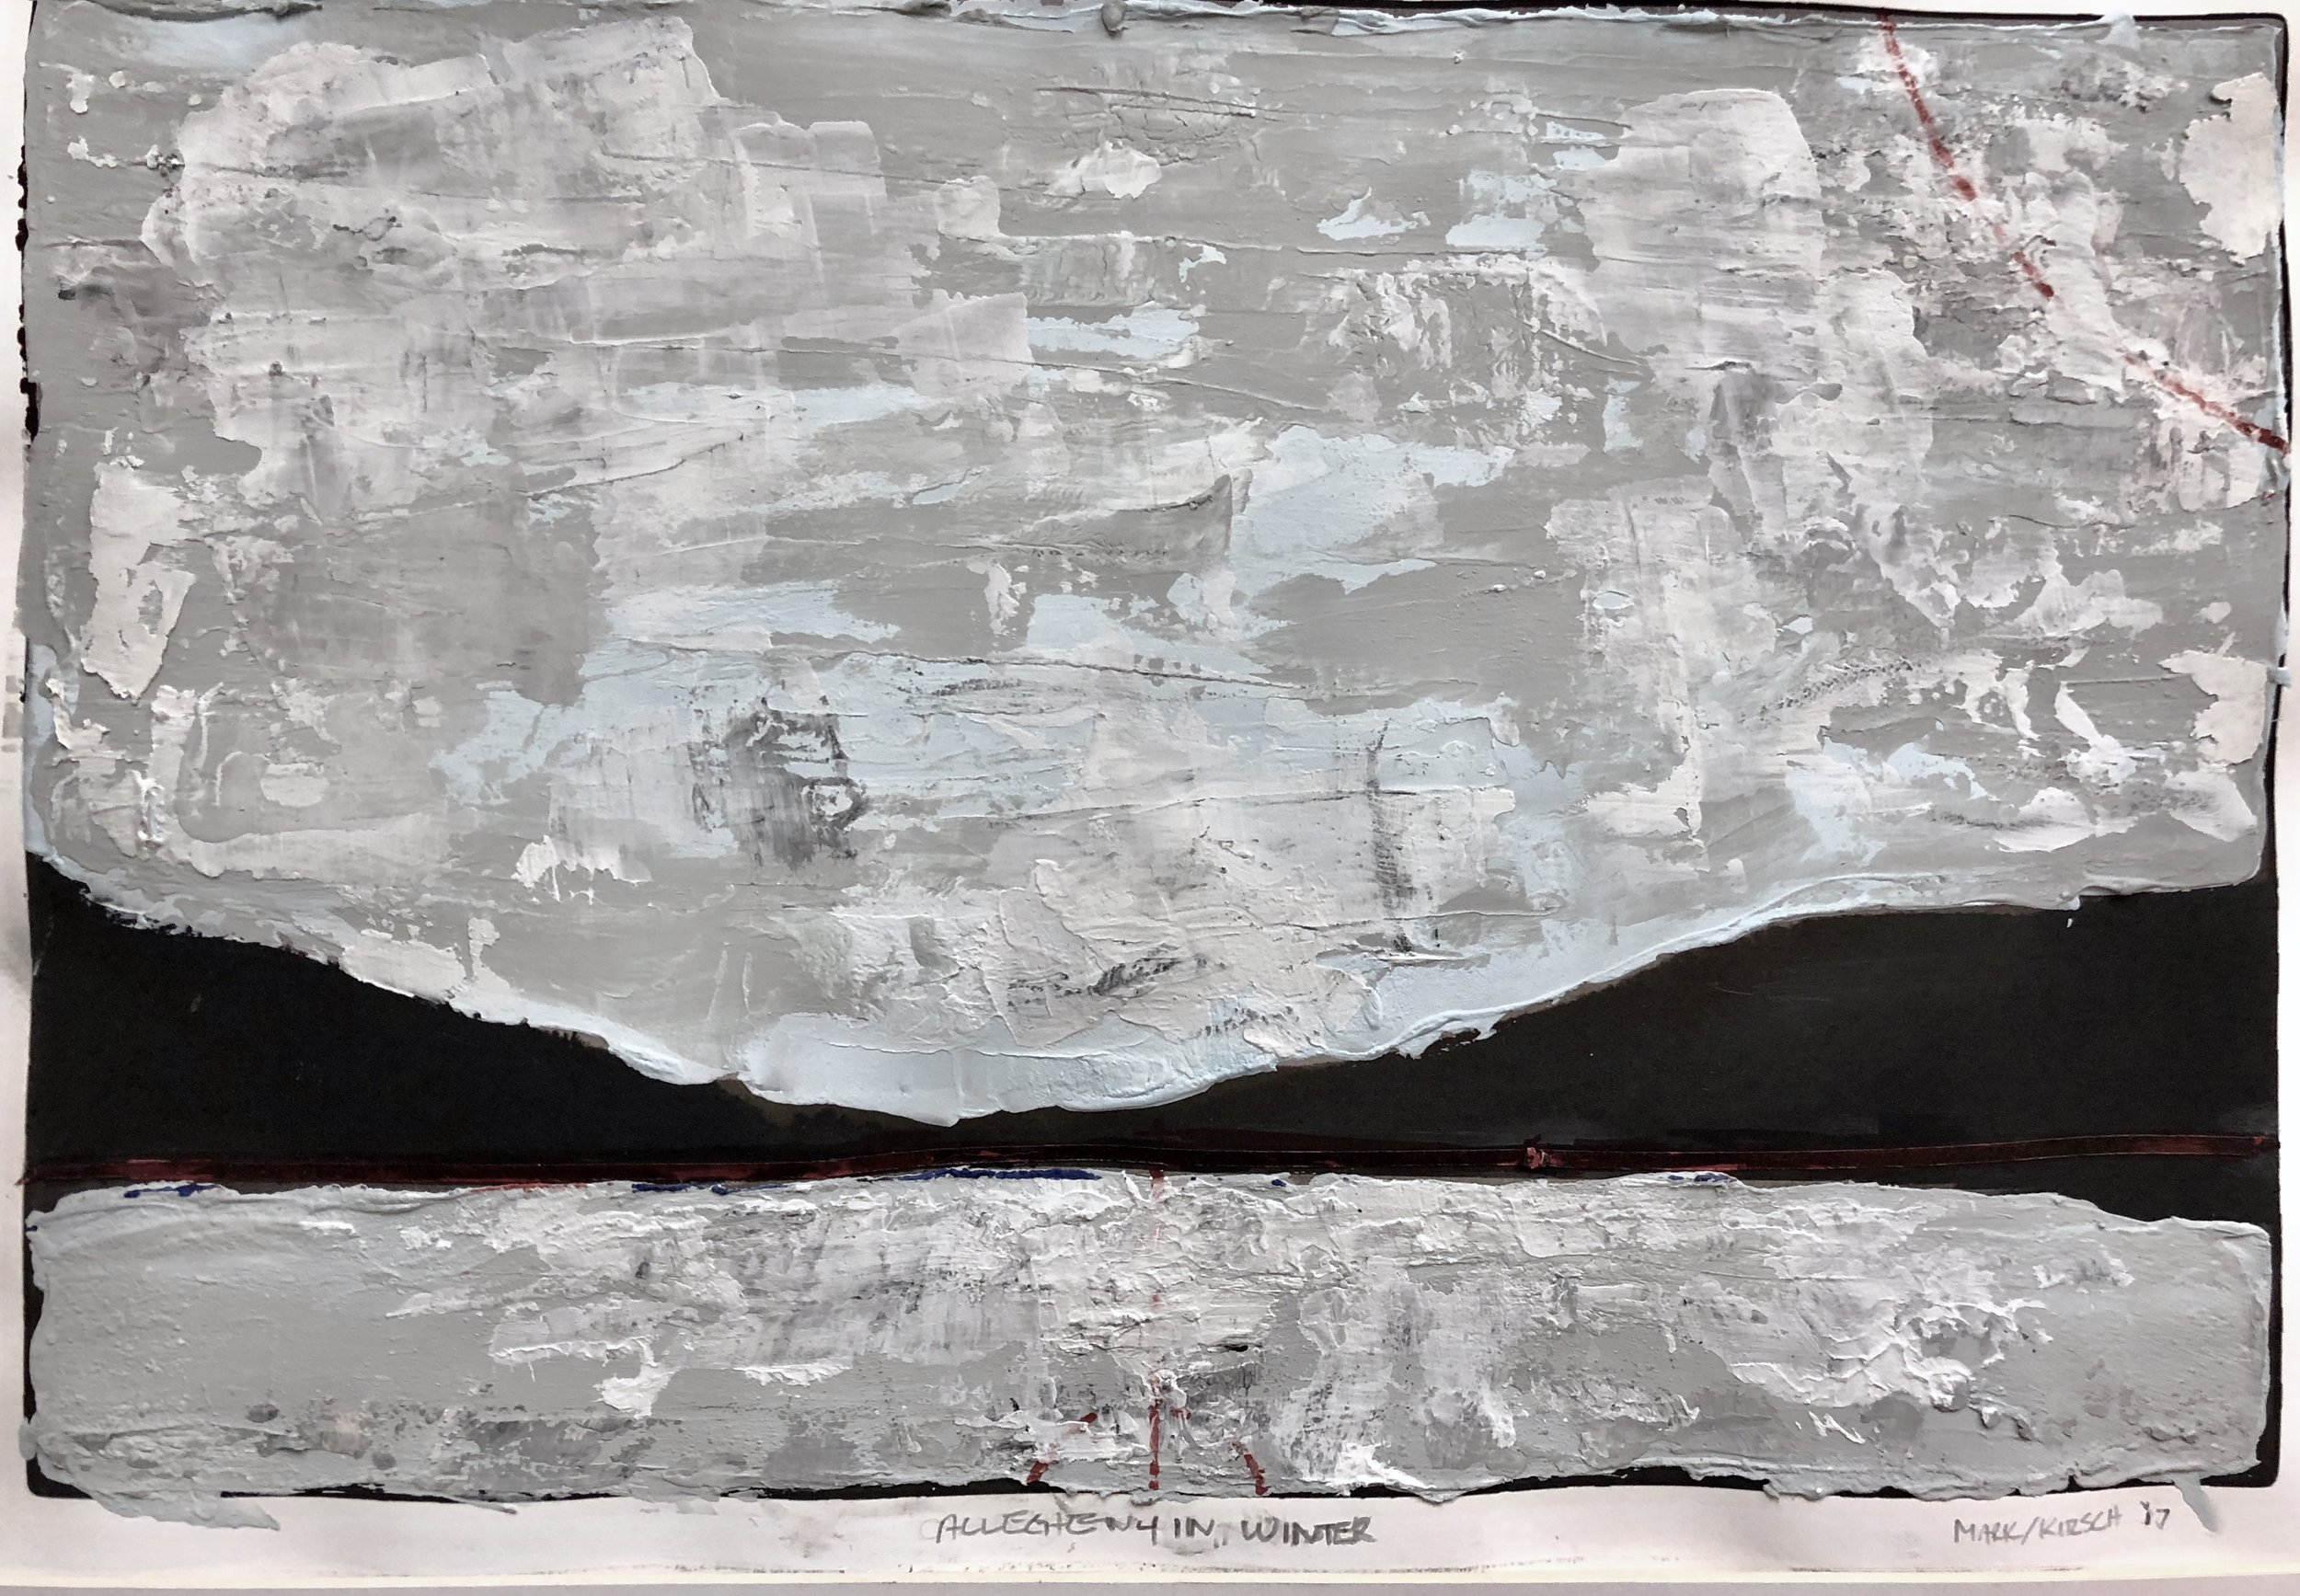 allegheny in winter; graphite, acrylic, masking tape, marker over pigment print (11x14)